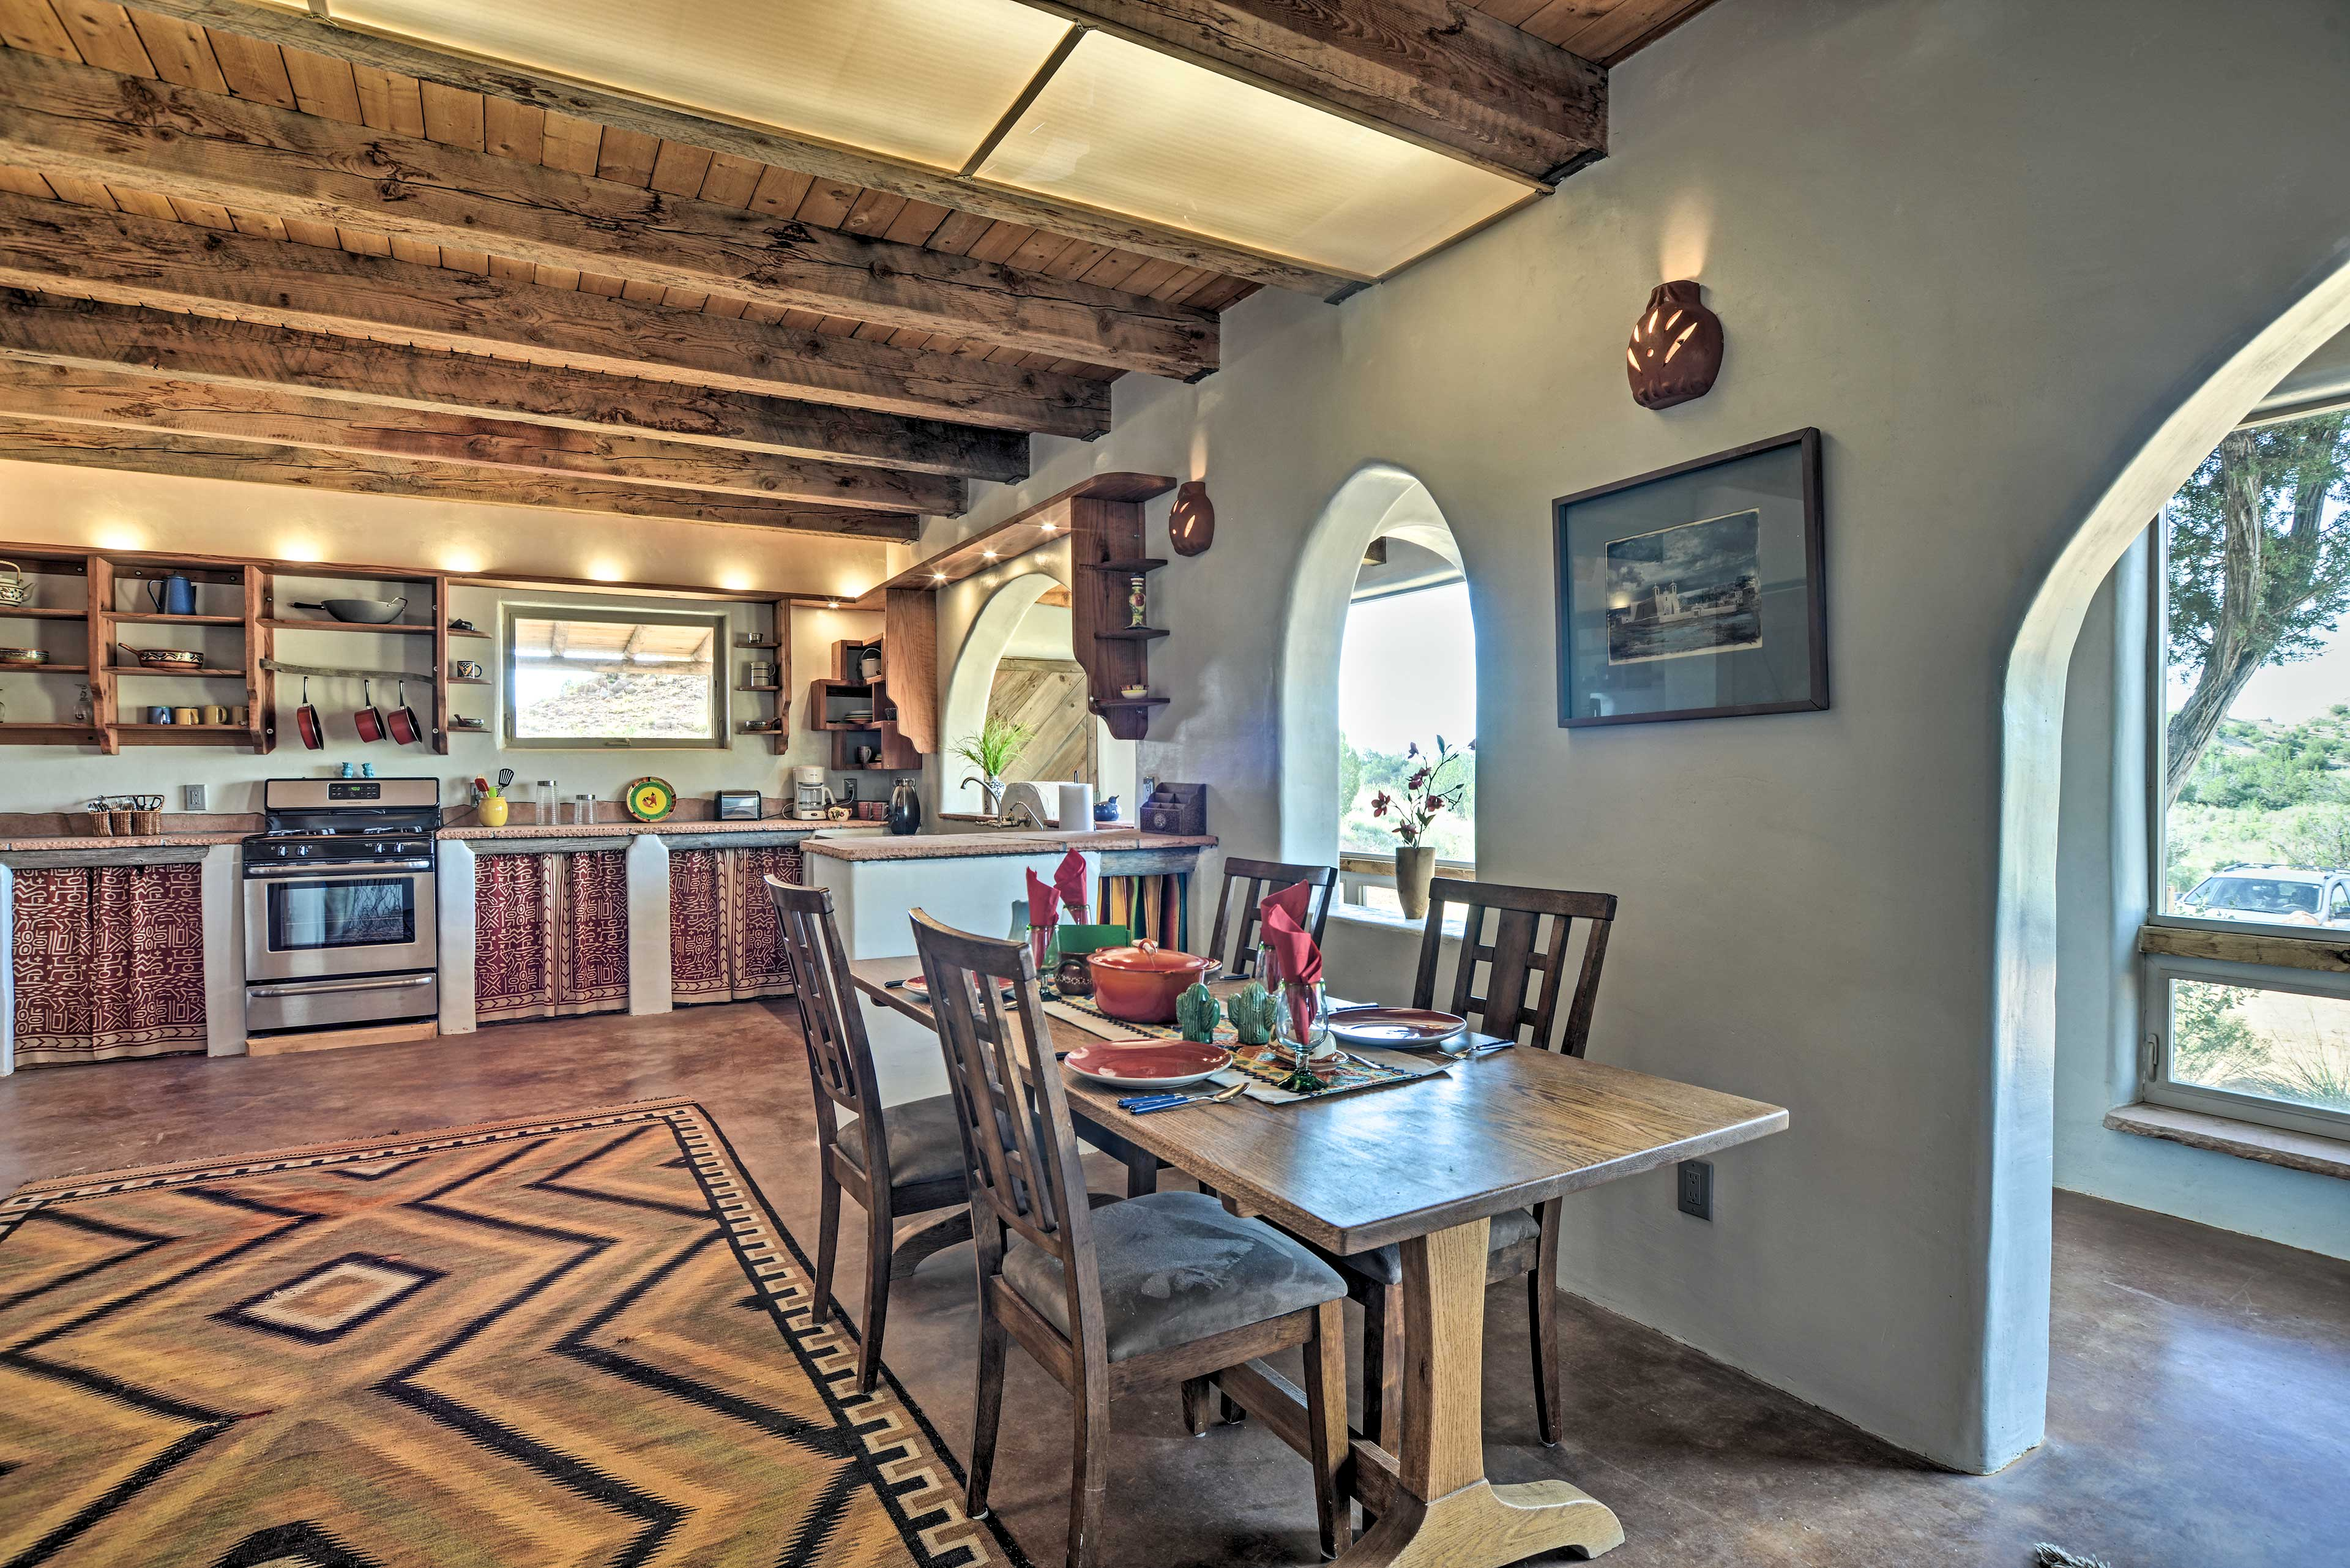 The kitchen & dining area share a spacious open layout.